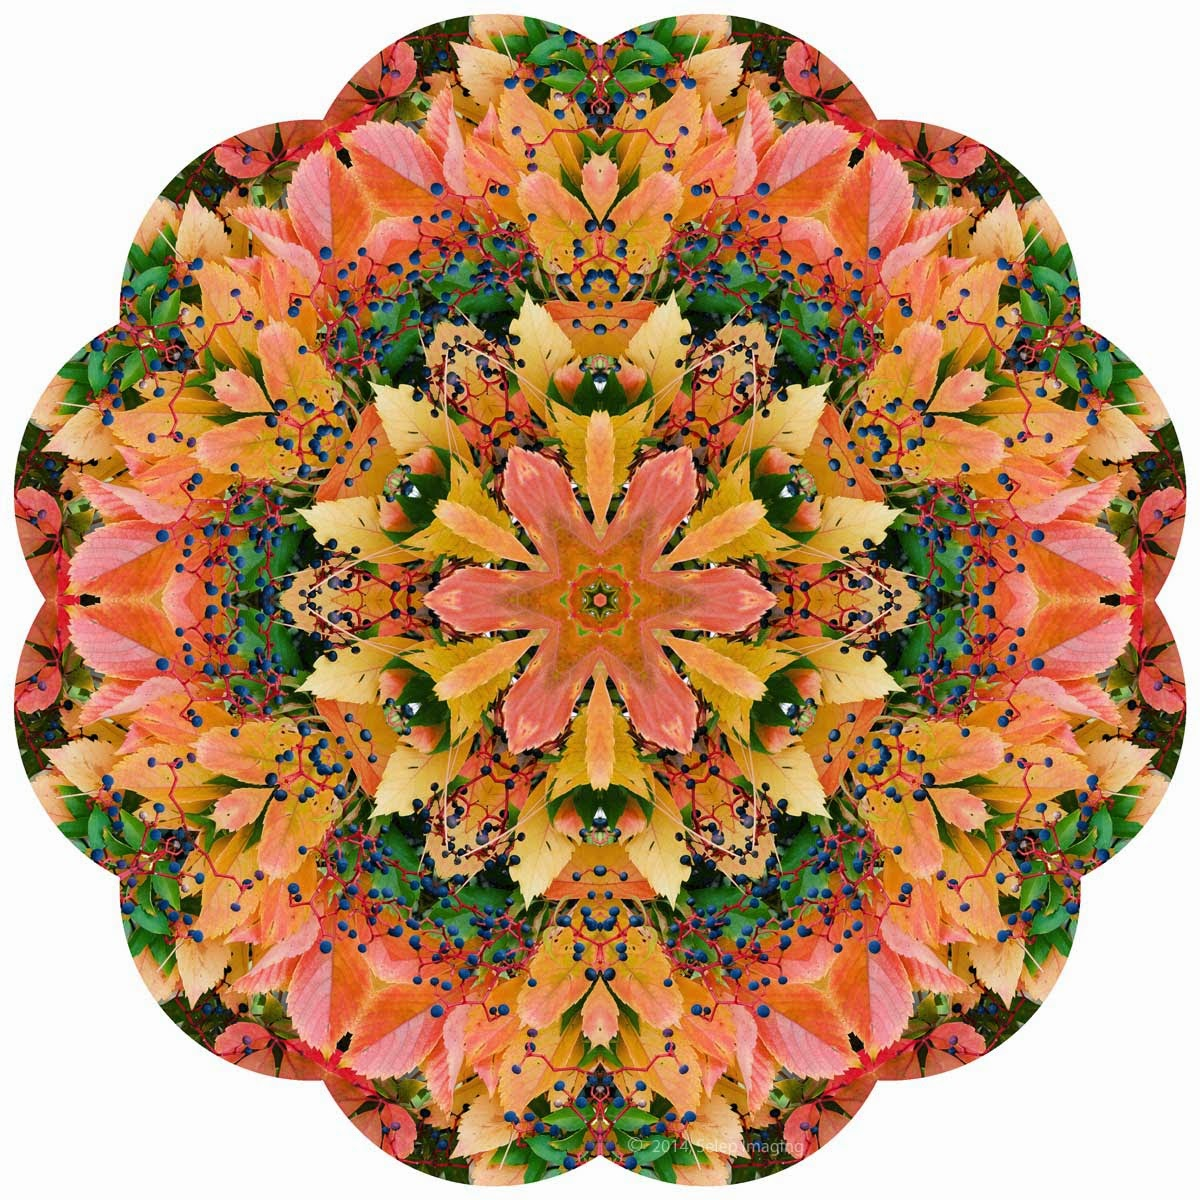 Kaleidoscope Photo Art fall by Jeanne Selep